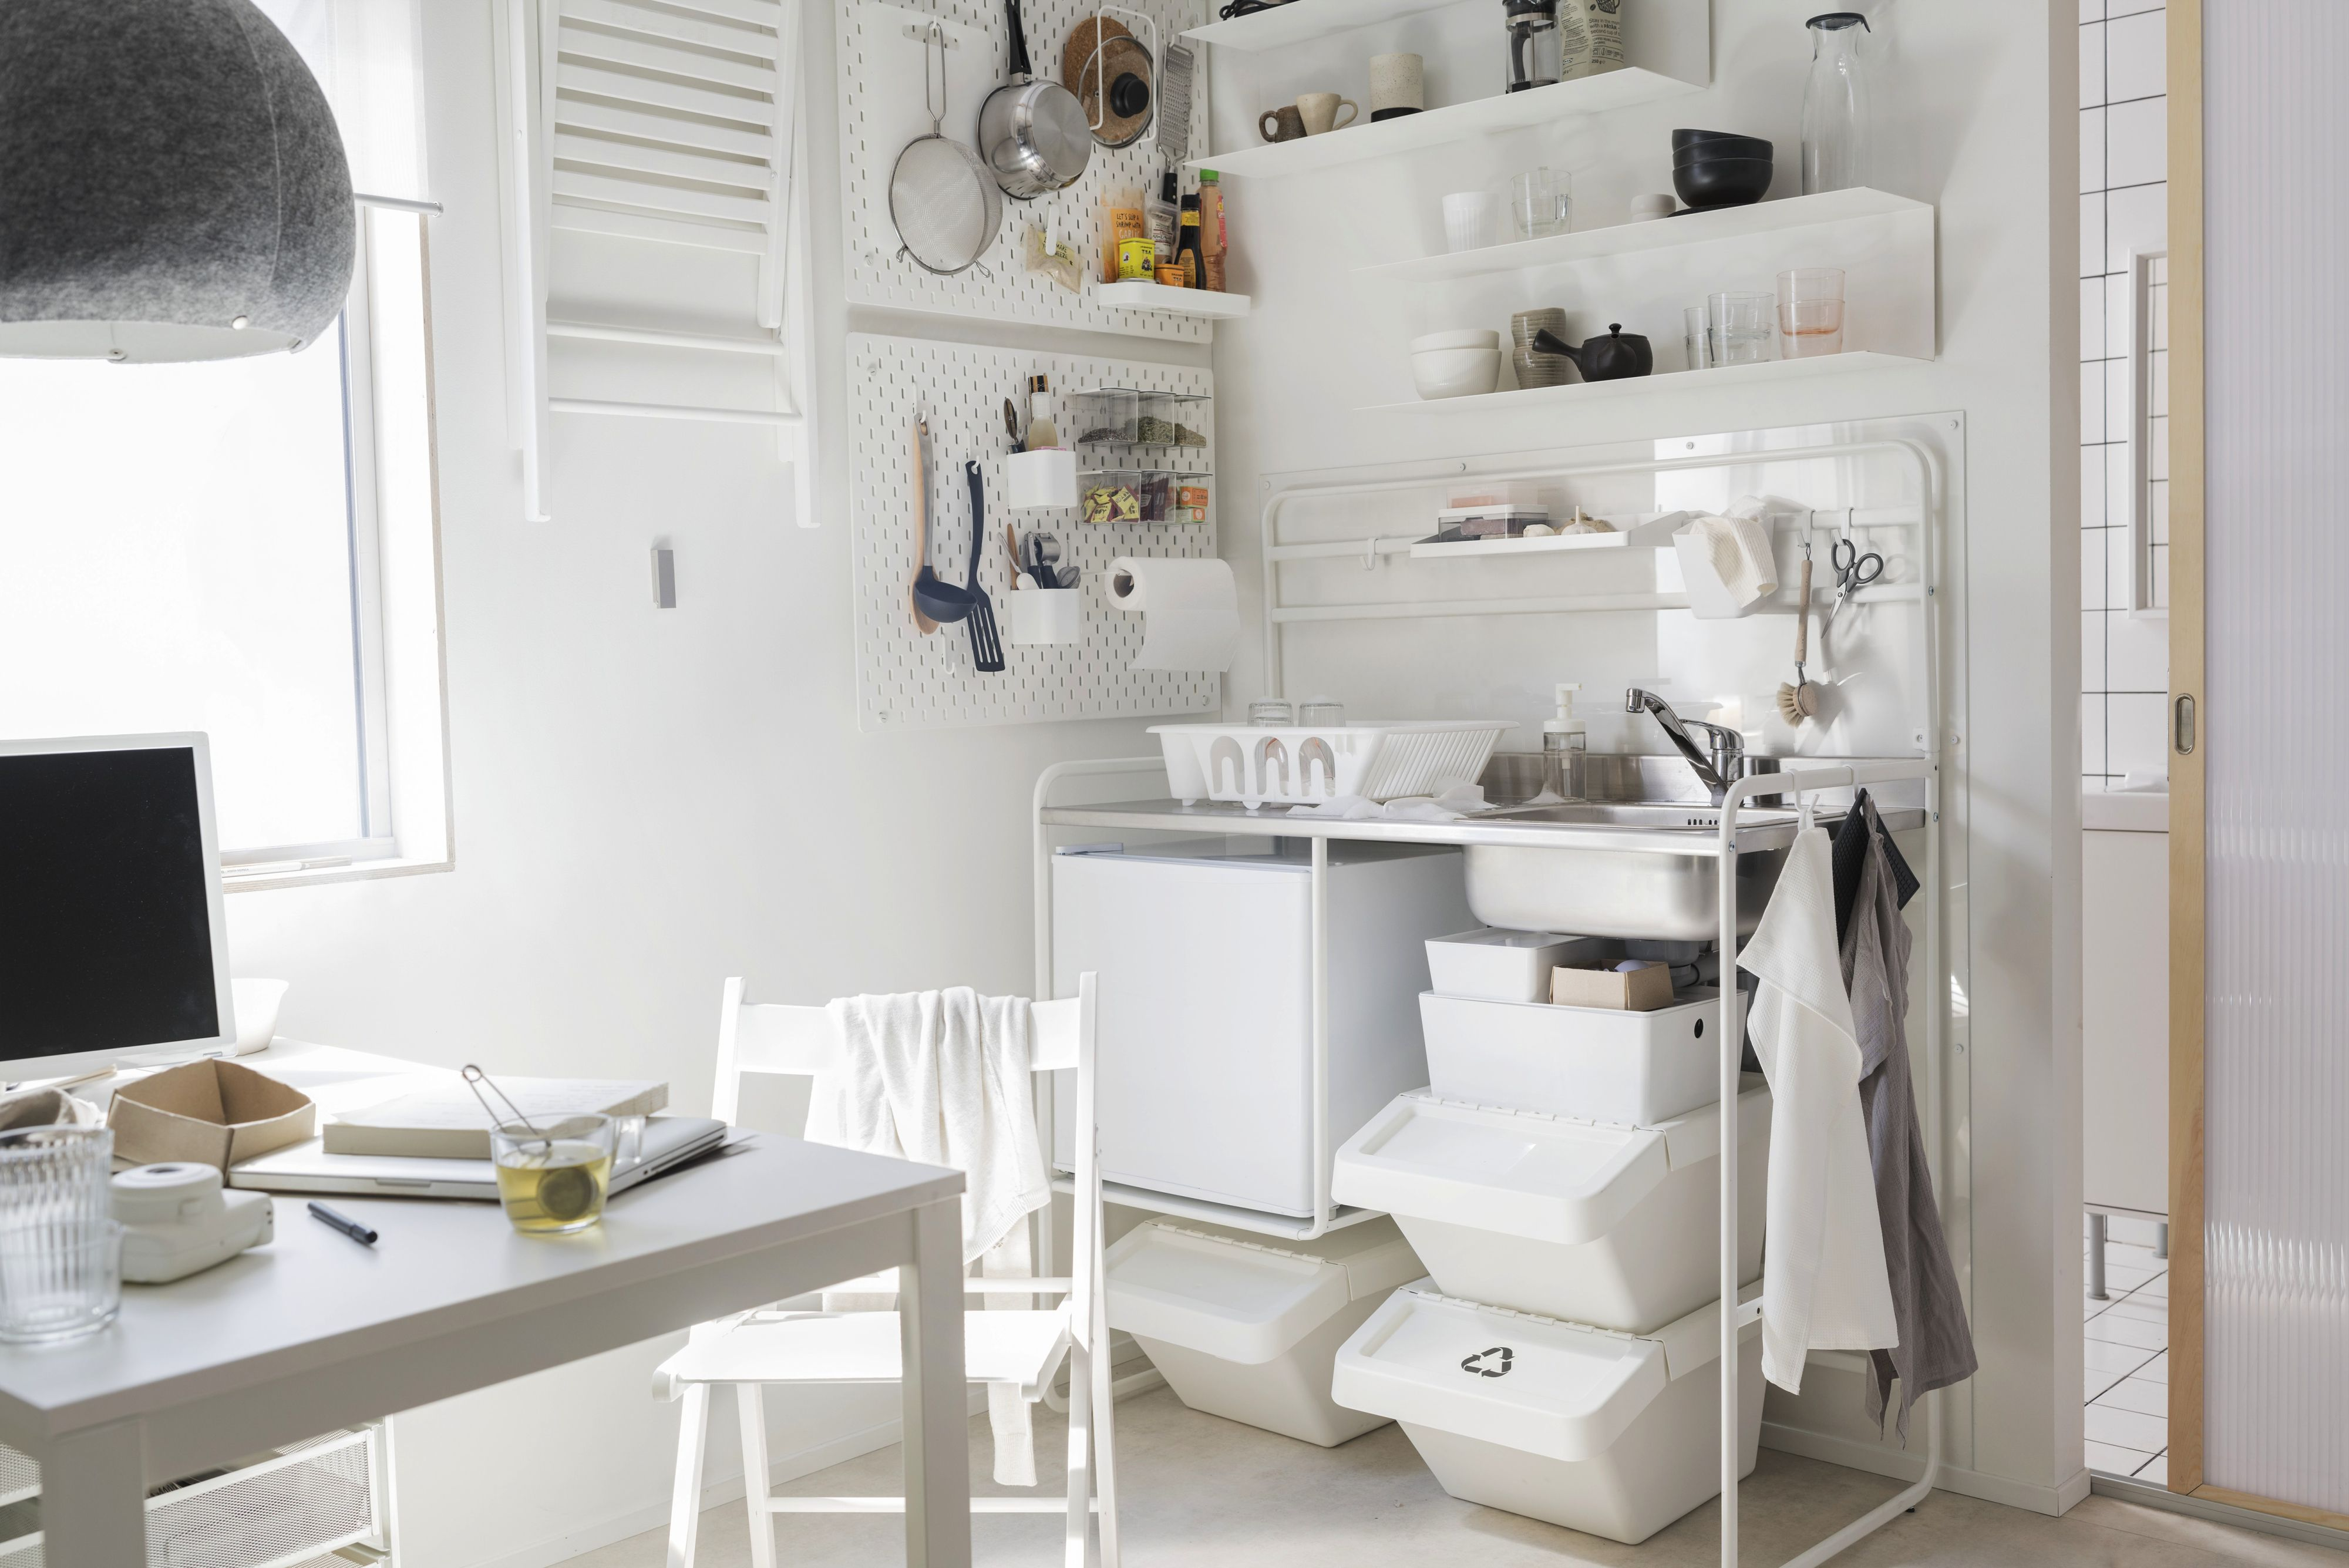 Your kitchen, your rules. The SUNNERSTA Mini-kitchen is an ...